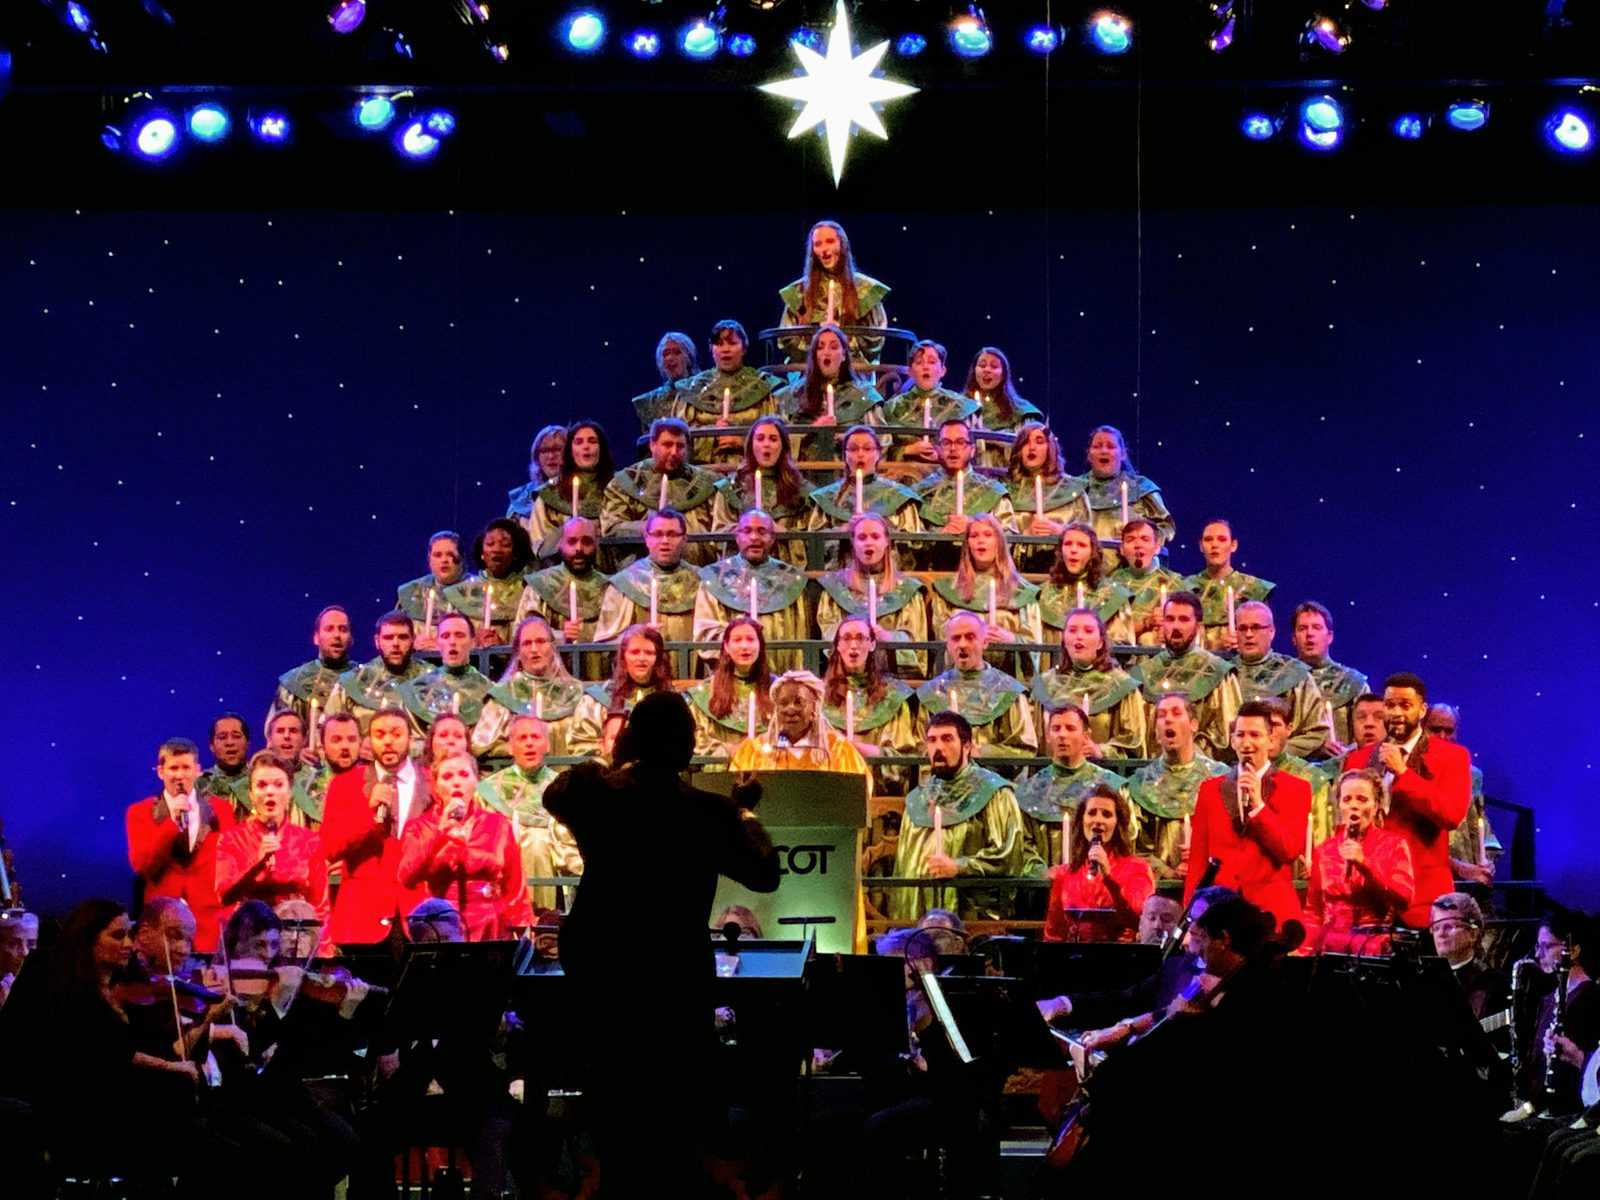 Candlelight processional at epcot festival of the holidays